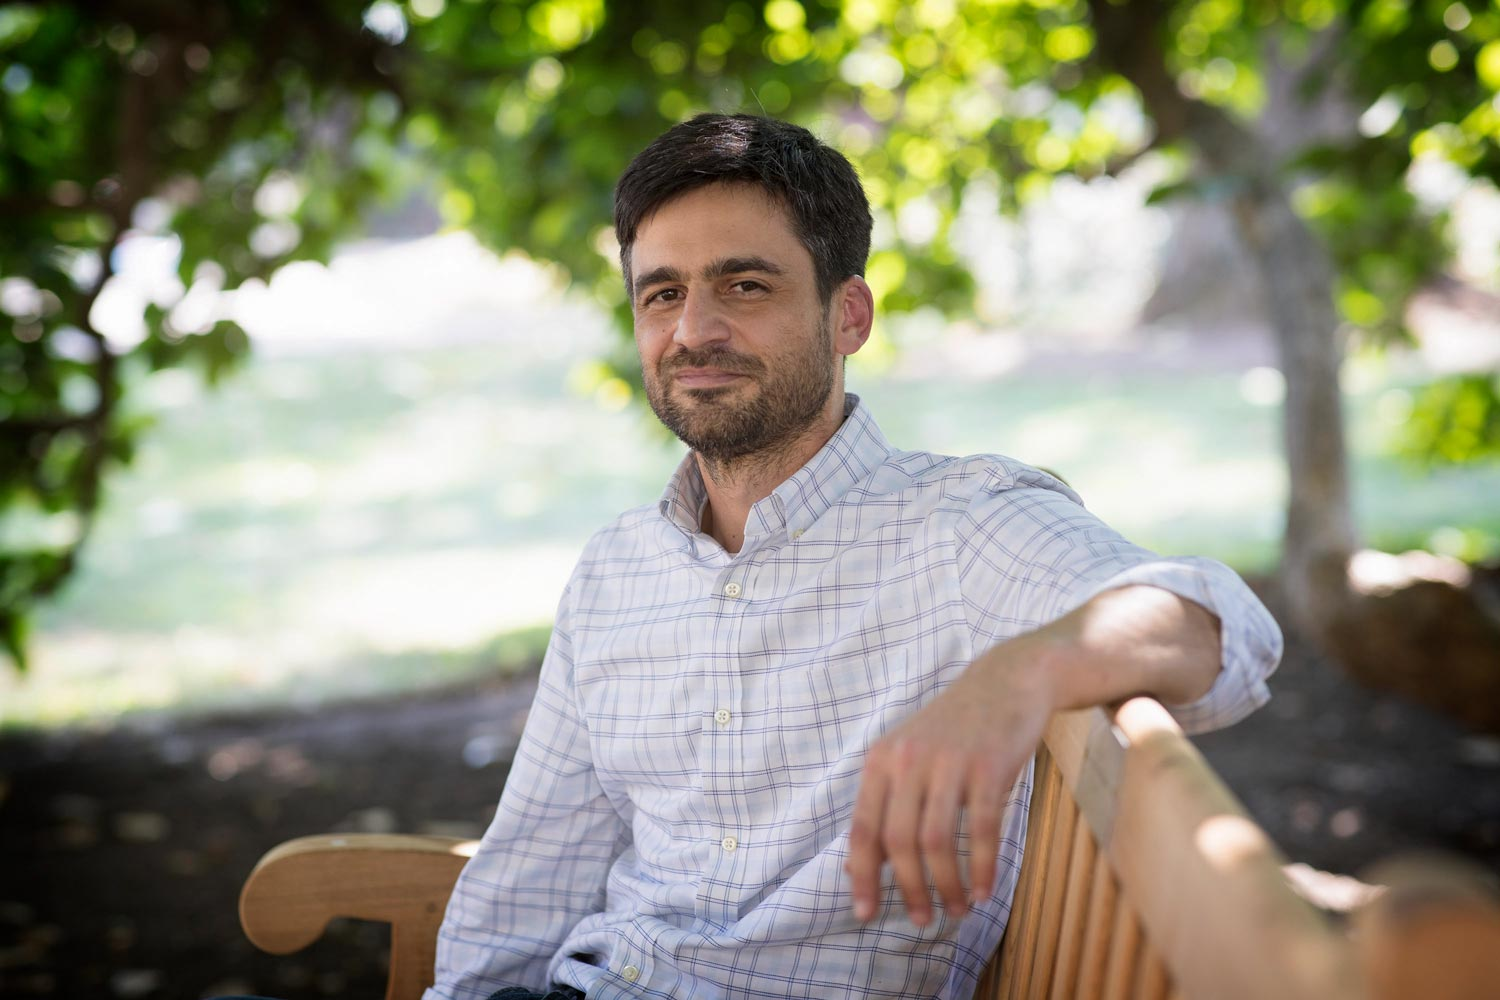 Roberto Armengol earned his Ph.D. in anthropology from UVA in 2013, after doing fieldwork in Havana and will work on a new research project focusing on cooperative farms.